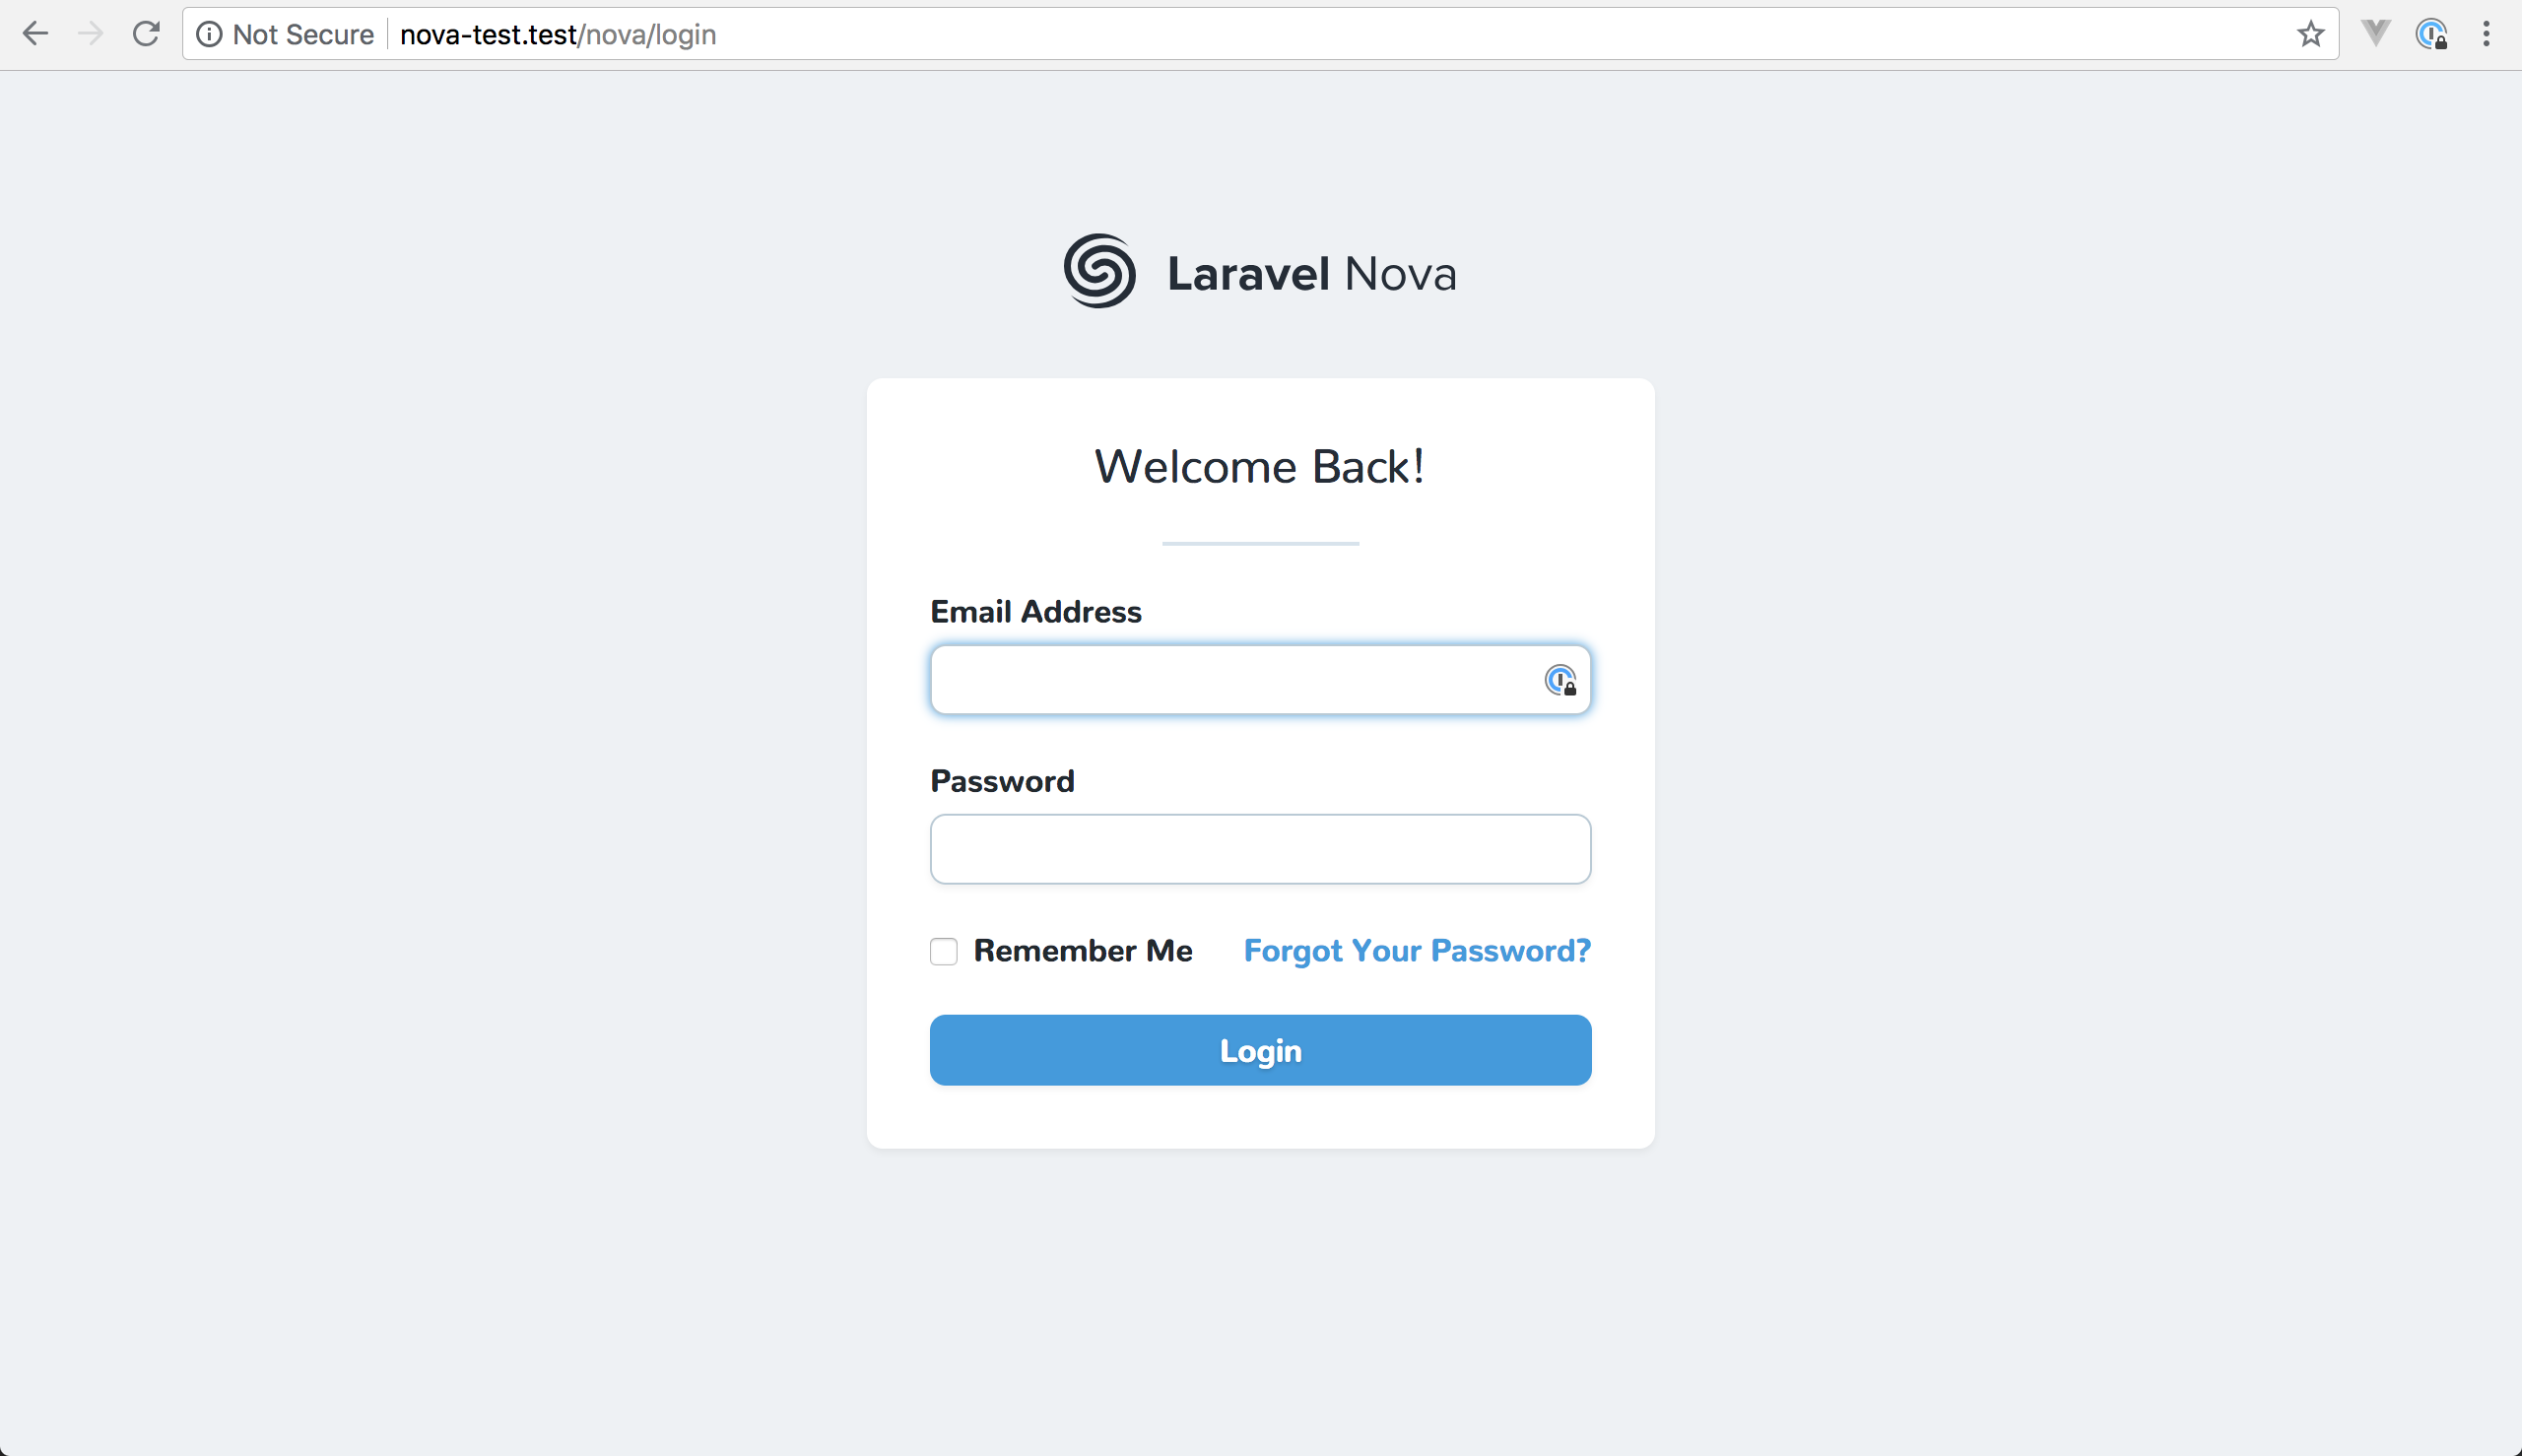 Getting Started with Laravel Nova - Nick Basile - Medium